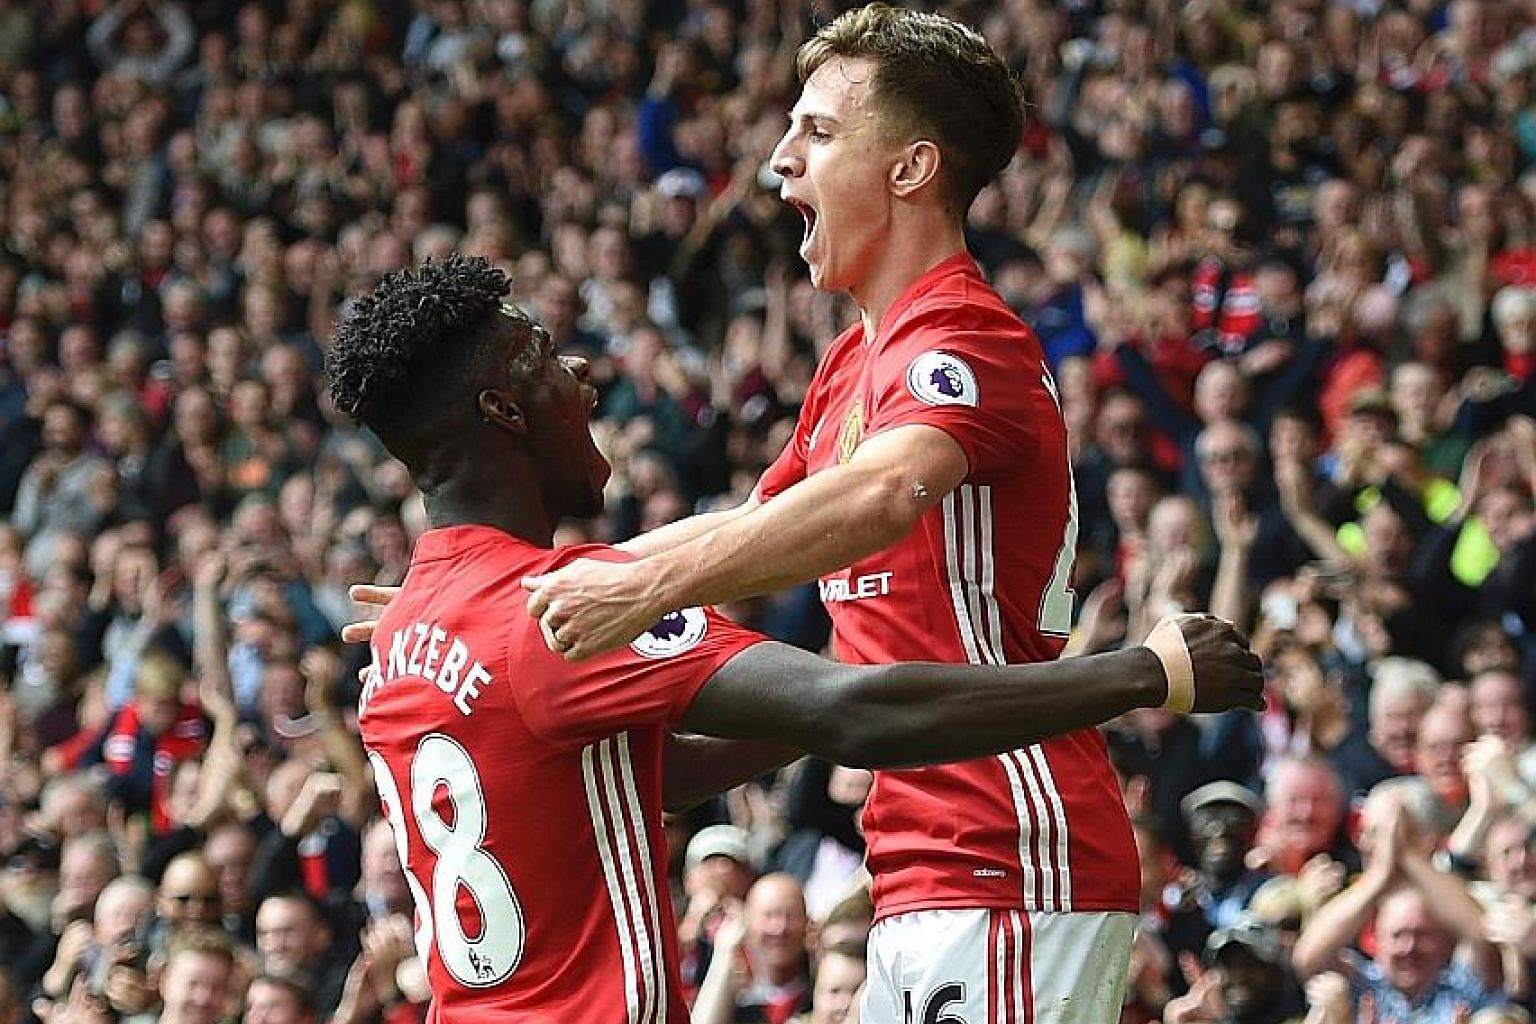 Josh Harrop celebrates scoring on his Manchester United debut against Crystal Palace with Axel Tuanzebe. Harrop, 21, was one of four players Jose Mourinho gave their first starts in a United shirt to.